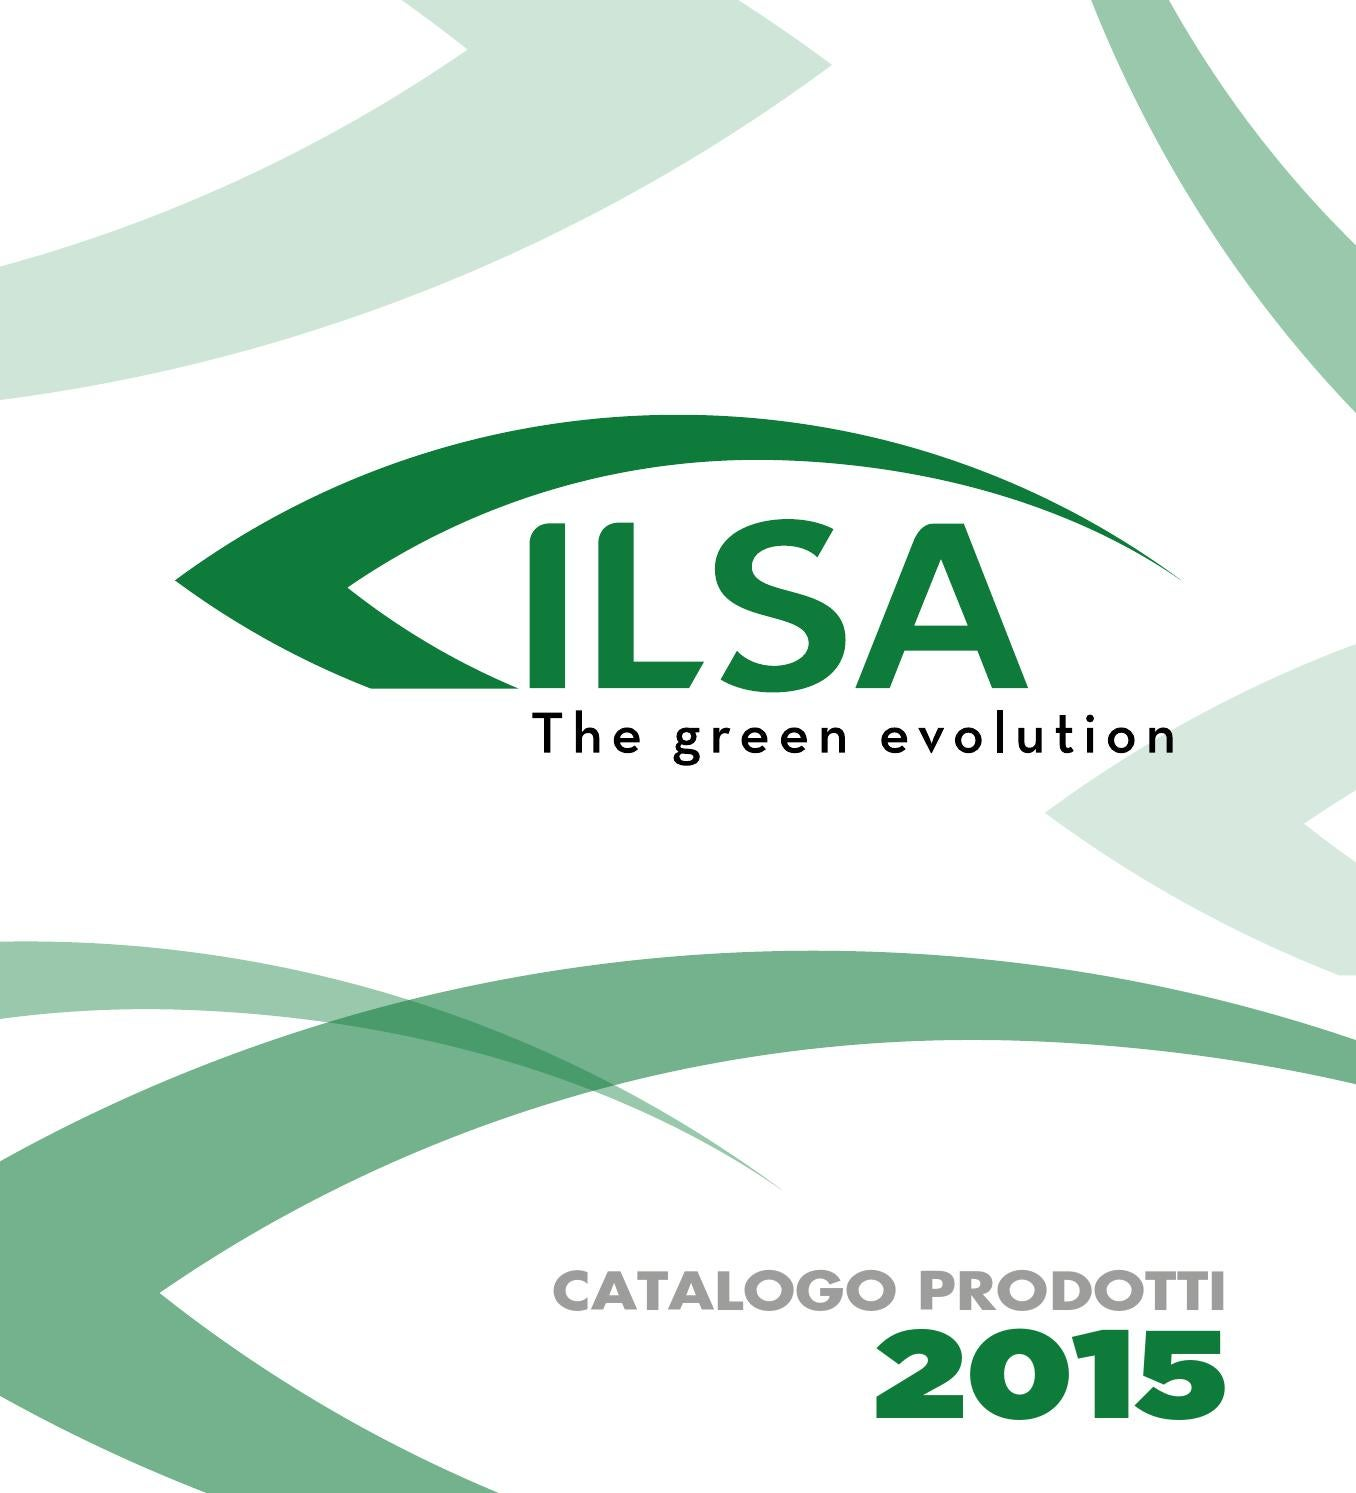 Ilsa catalogo 2015 by ilsa s p a issuu for Progress catalogo 2015